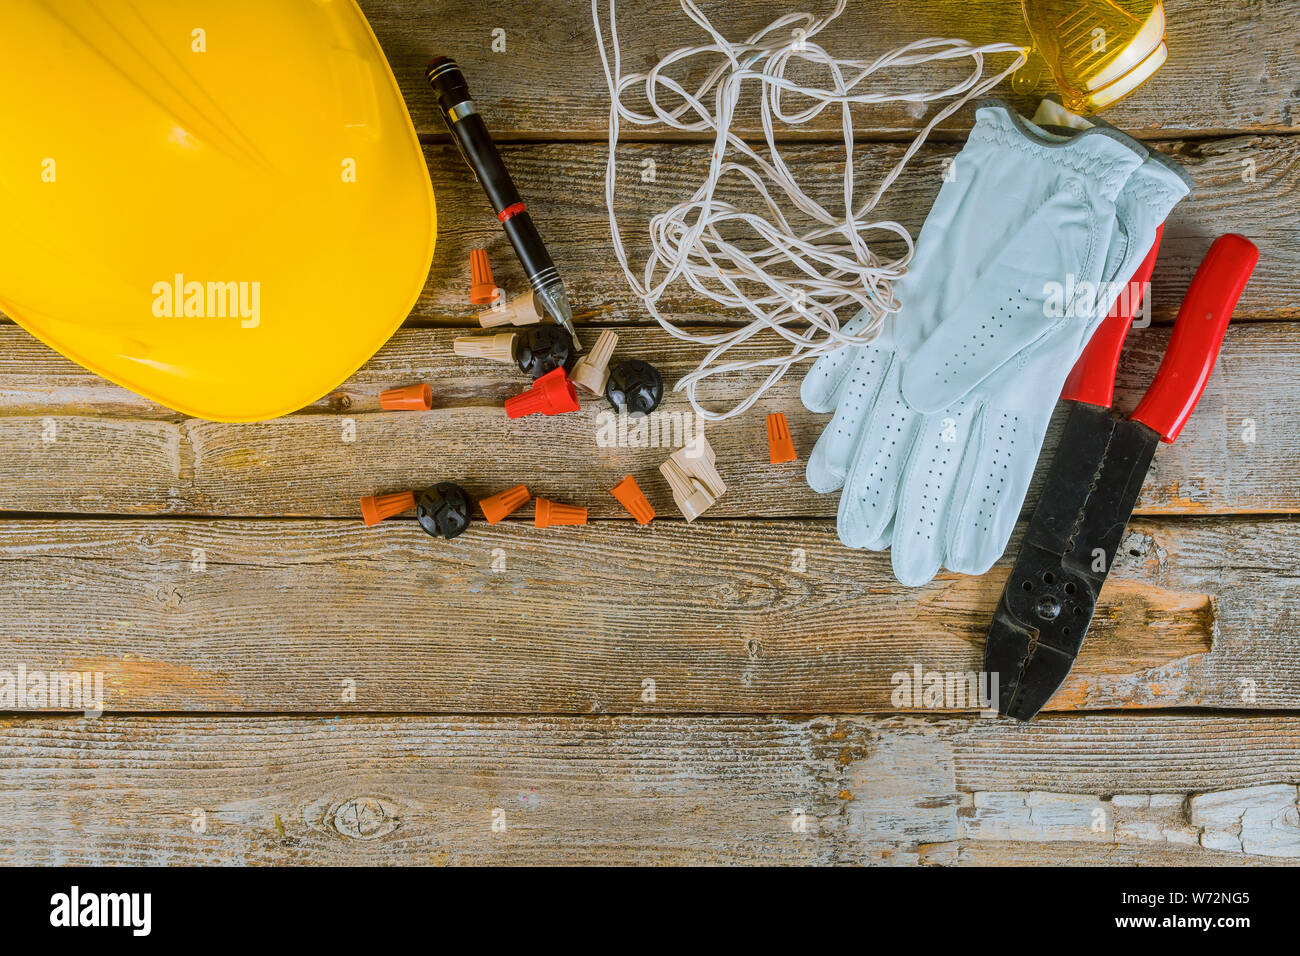 Electrician Technician At Work Prepares The Tools And Cables Used In Electrical Home Installation And Yellow Helmet Stock Photo Alamy